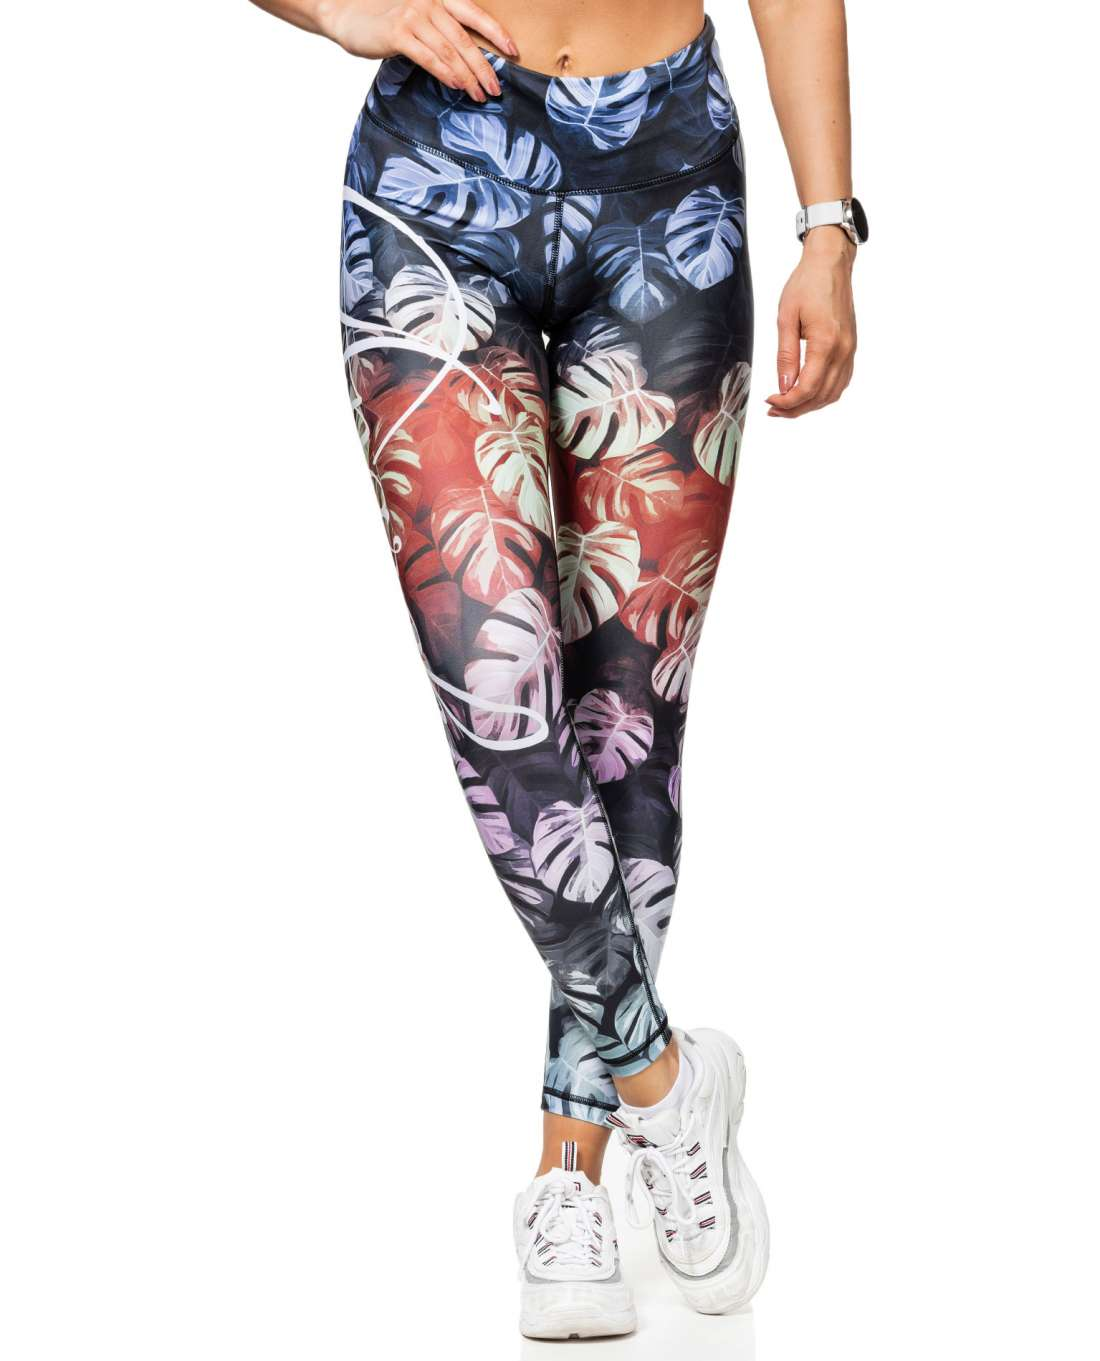 Monstera Tights Anarchy Apparel